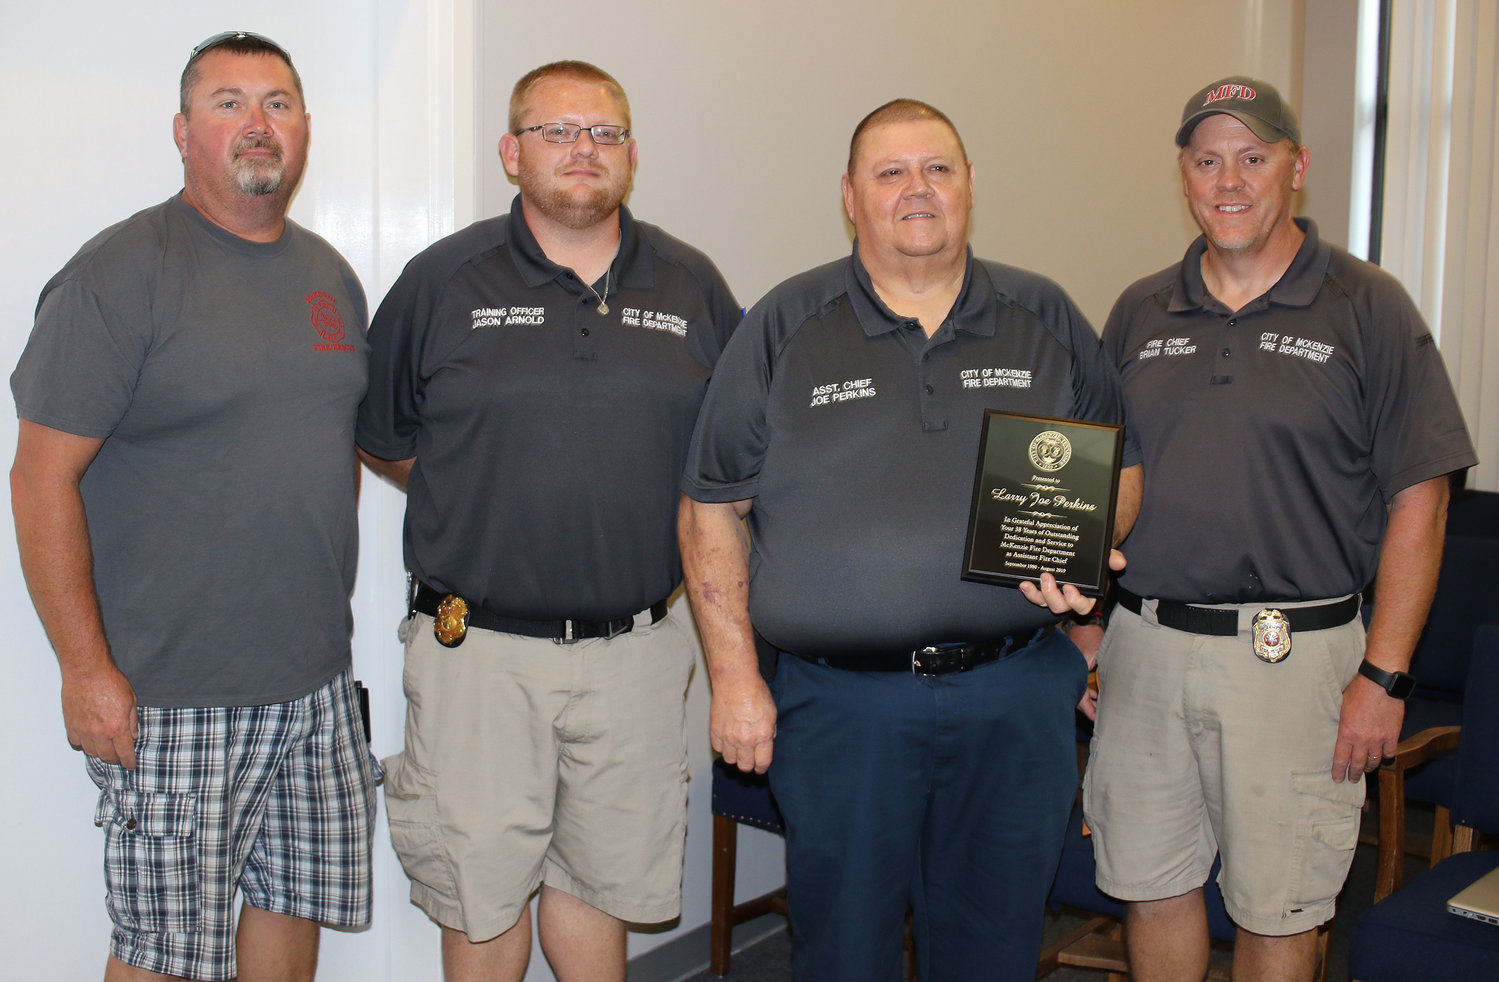 Congratulating Joe Perkins on his 31 years of service to McKenzie Fire Department are Assistant Chief Roger Christian, full-time firefighter Jason Arnold, Retiring Assistant Chief Joe Perkins, and Chief Brian Tucker.